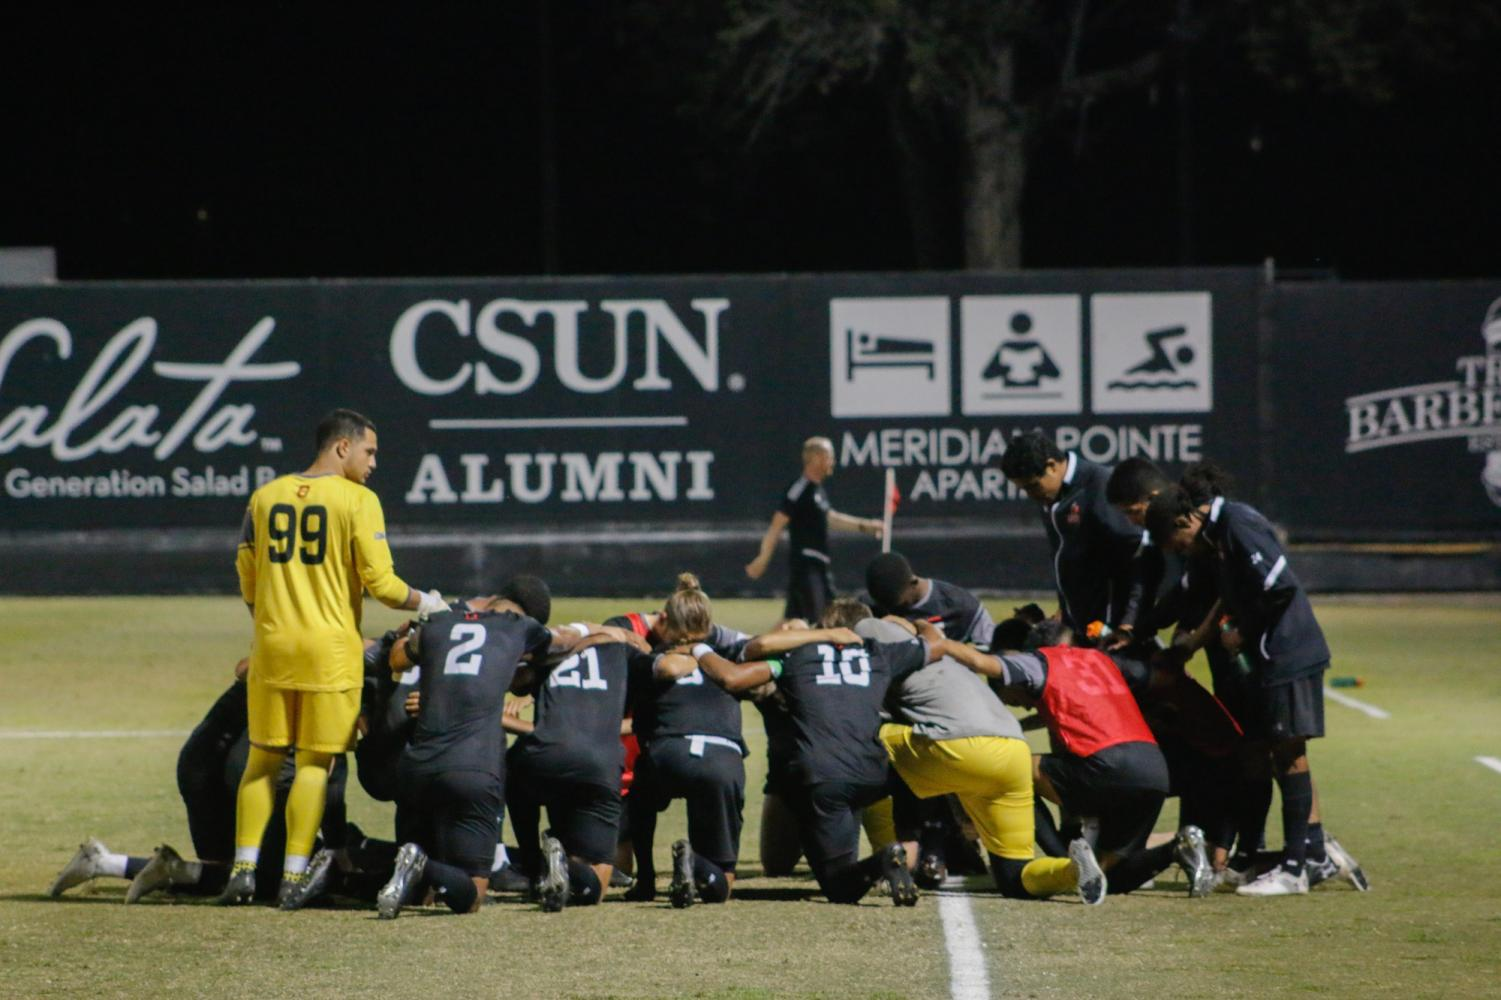 The CSUN men's soccer team huddling after their win on Wednesday, Oct. 16. The team's record moves to 6-6-1. Photo credit: Cesar Saldana